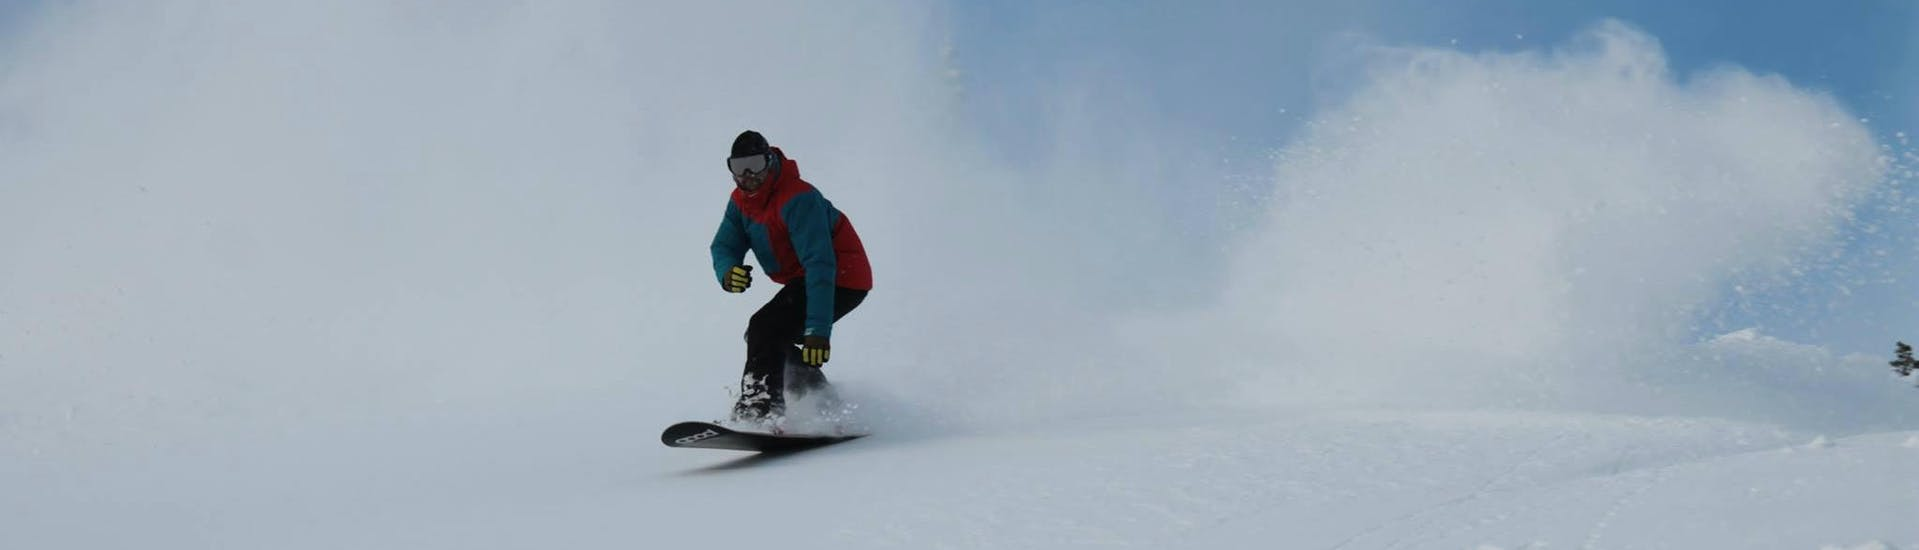 Snowboarding Lessons (from 10 y.) for Beginners with BoardStars Snowboardschule Schladming - Hero image